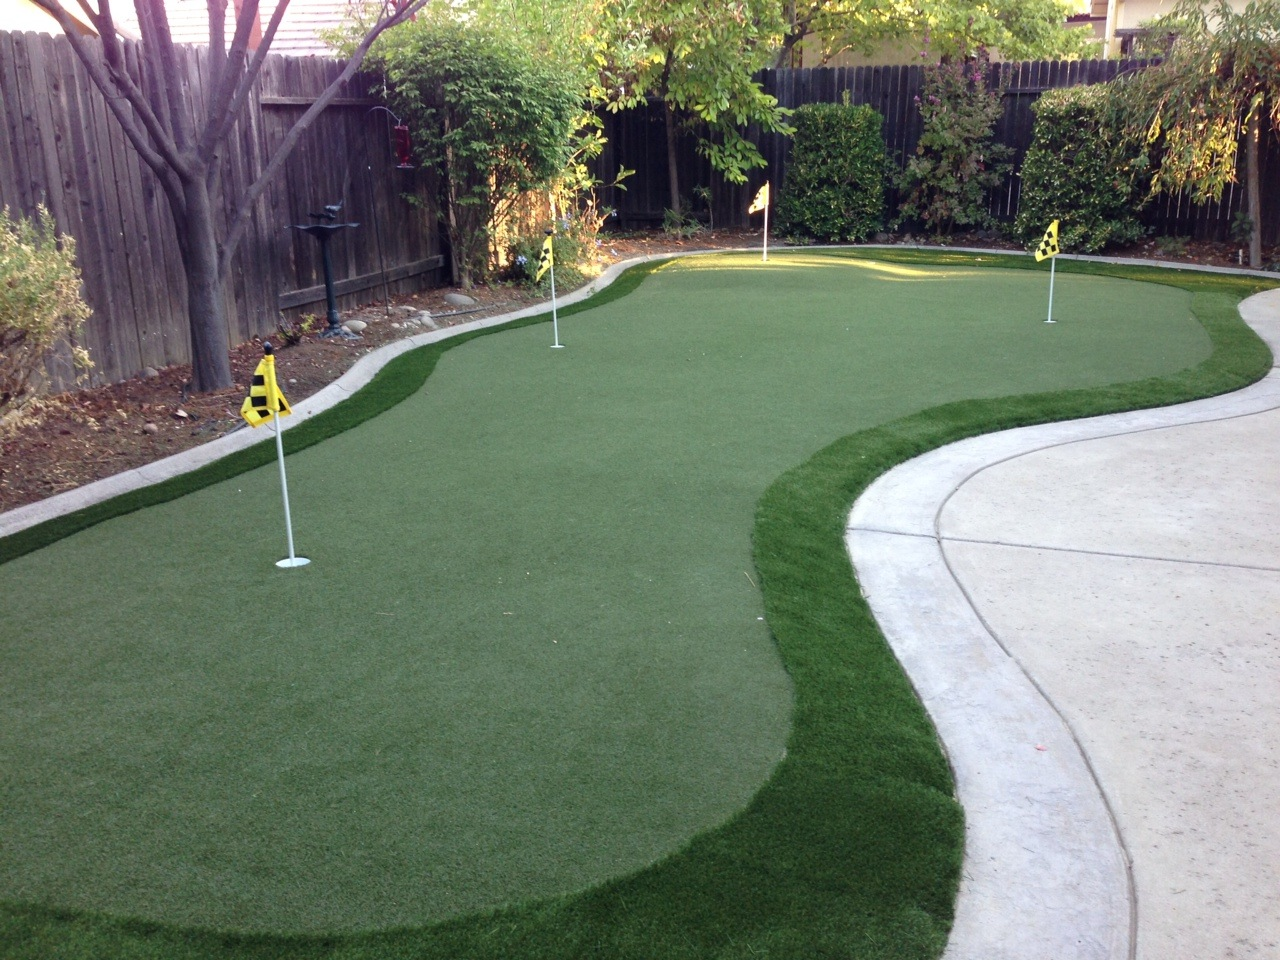 How To Build A Putting Green In My Backyard my d.i.y. putting green experience